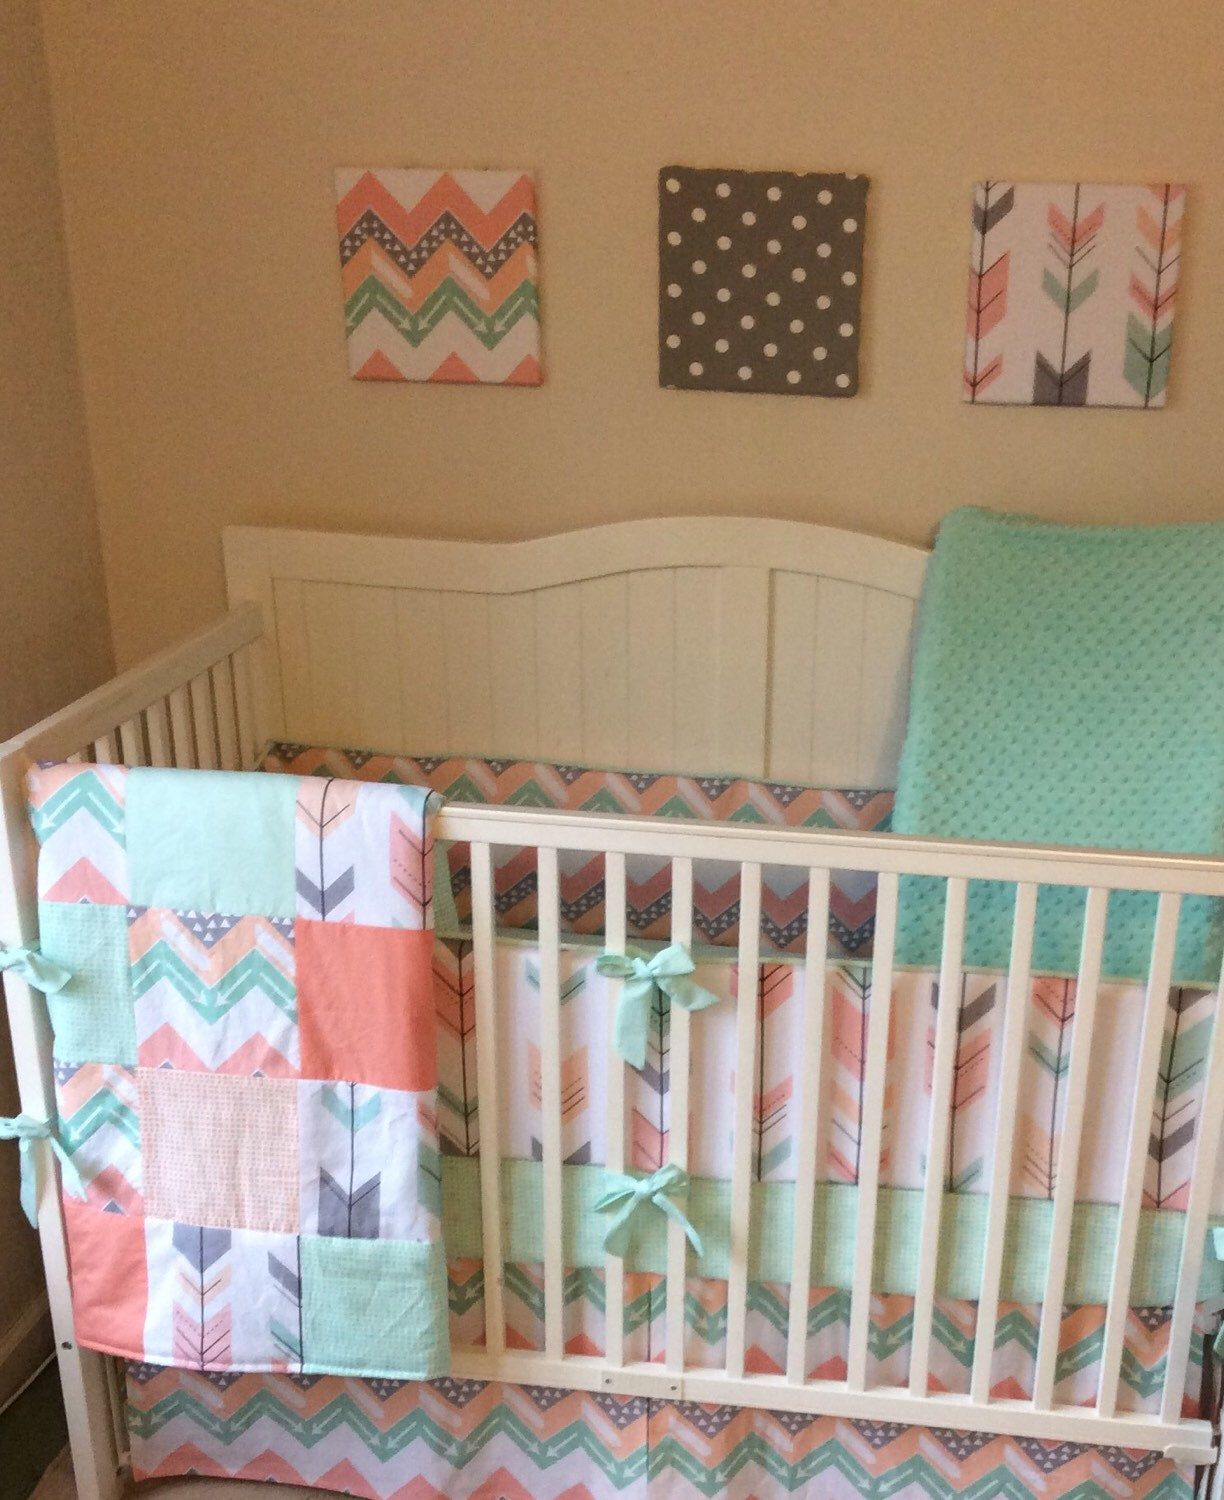 shae sheets vintage bedding collections peach baby s cribs lane crib caden floral coral